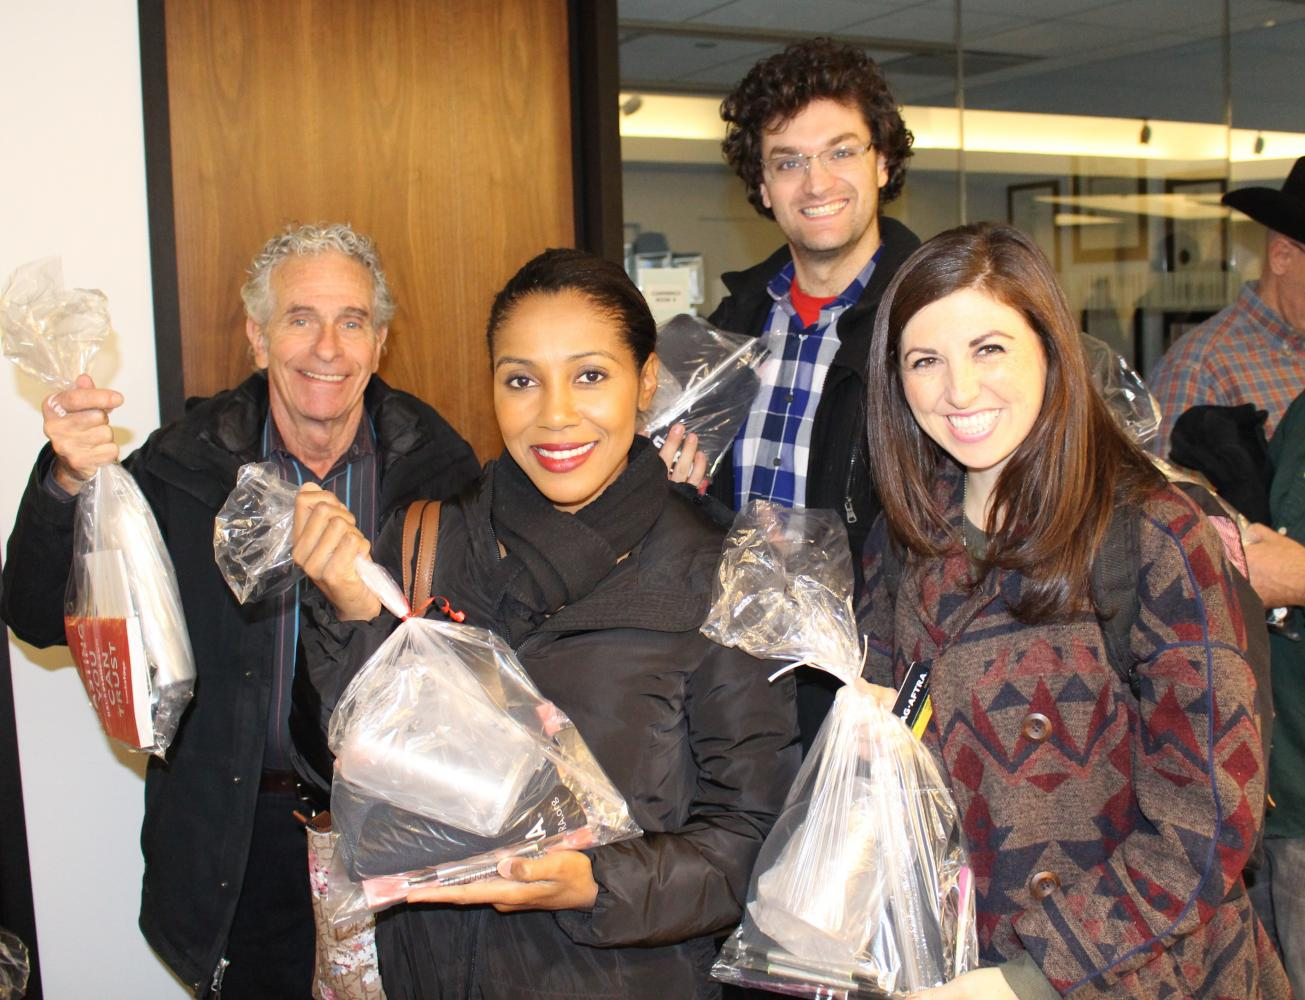 Members smile after receiving their free goody bags at the Holiday Open House.